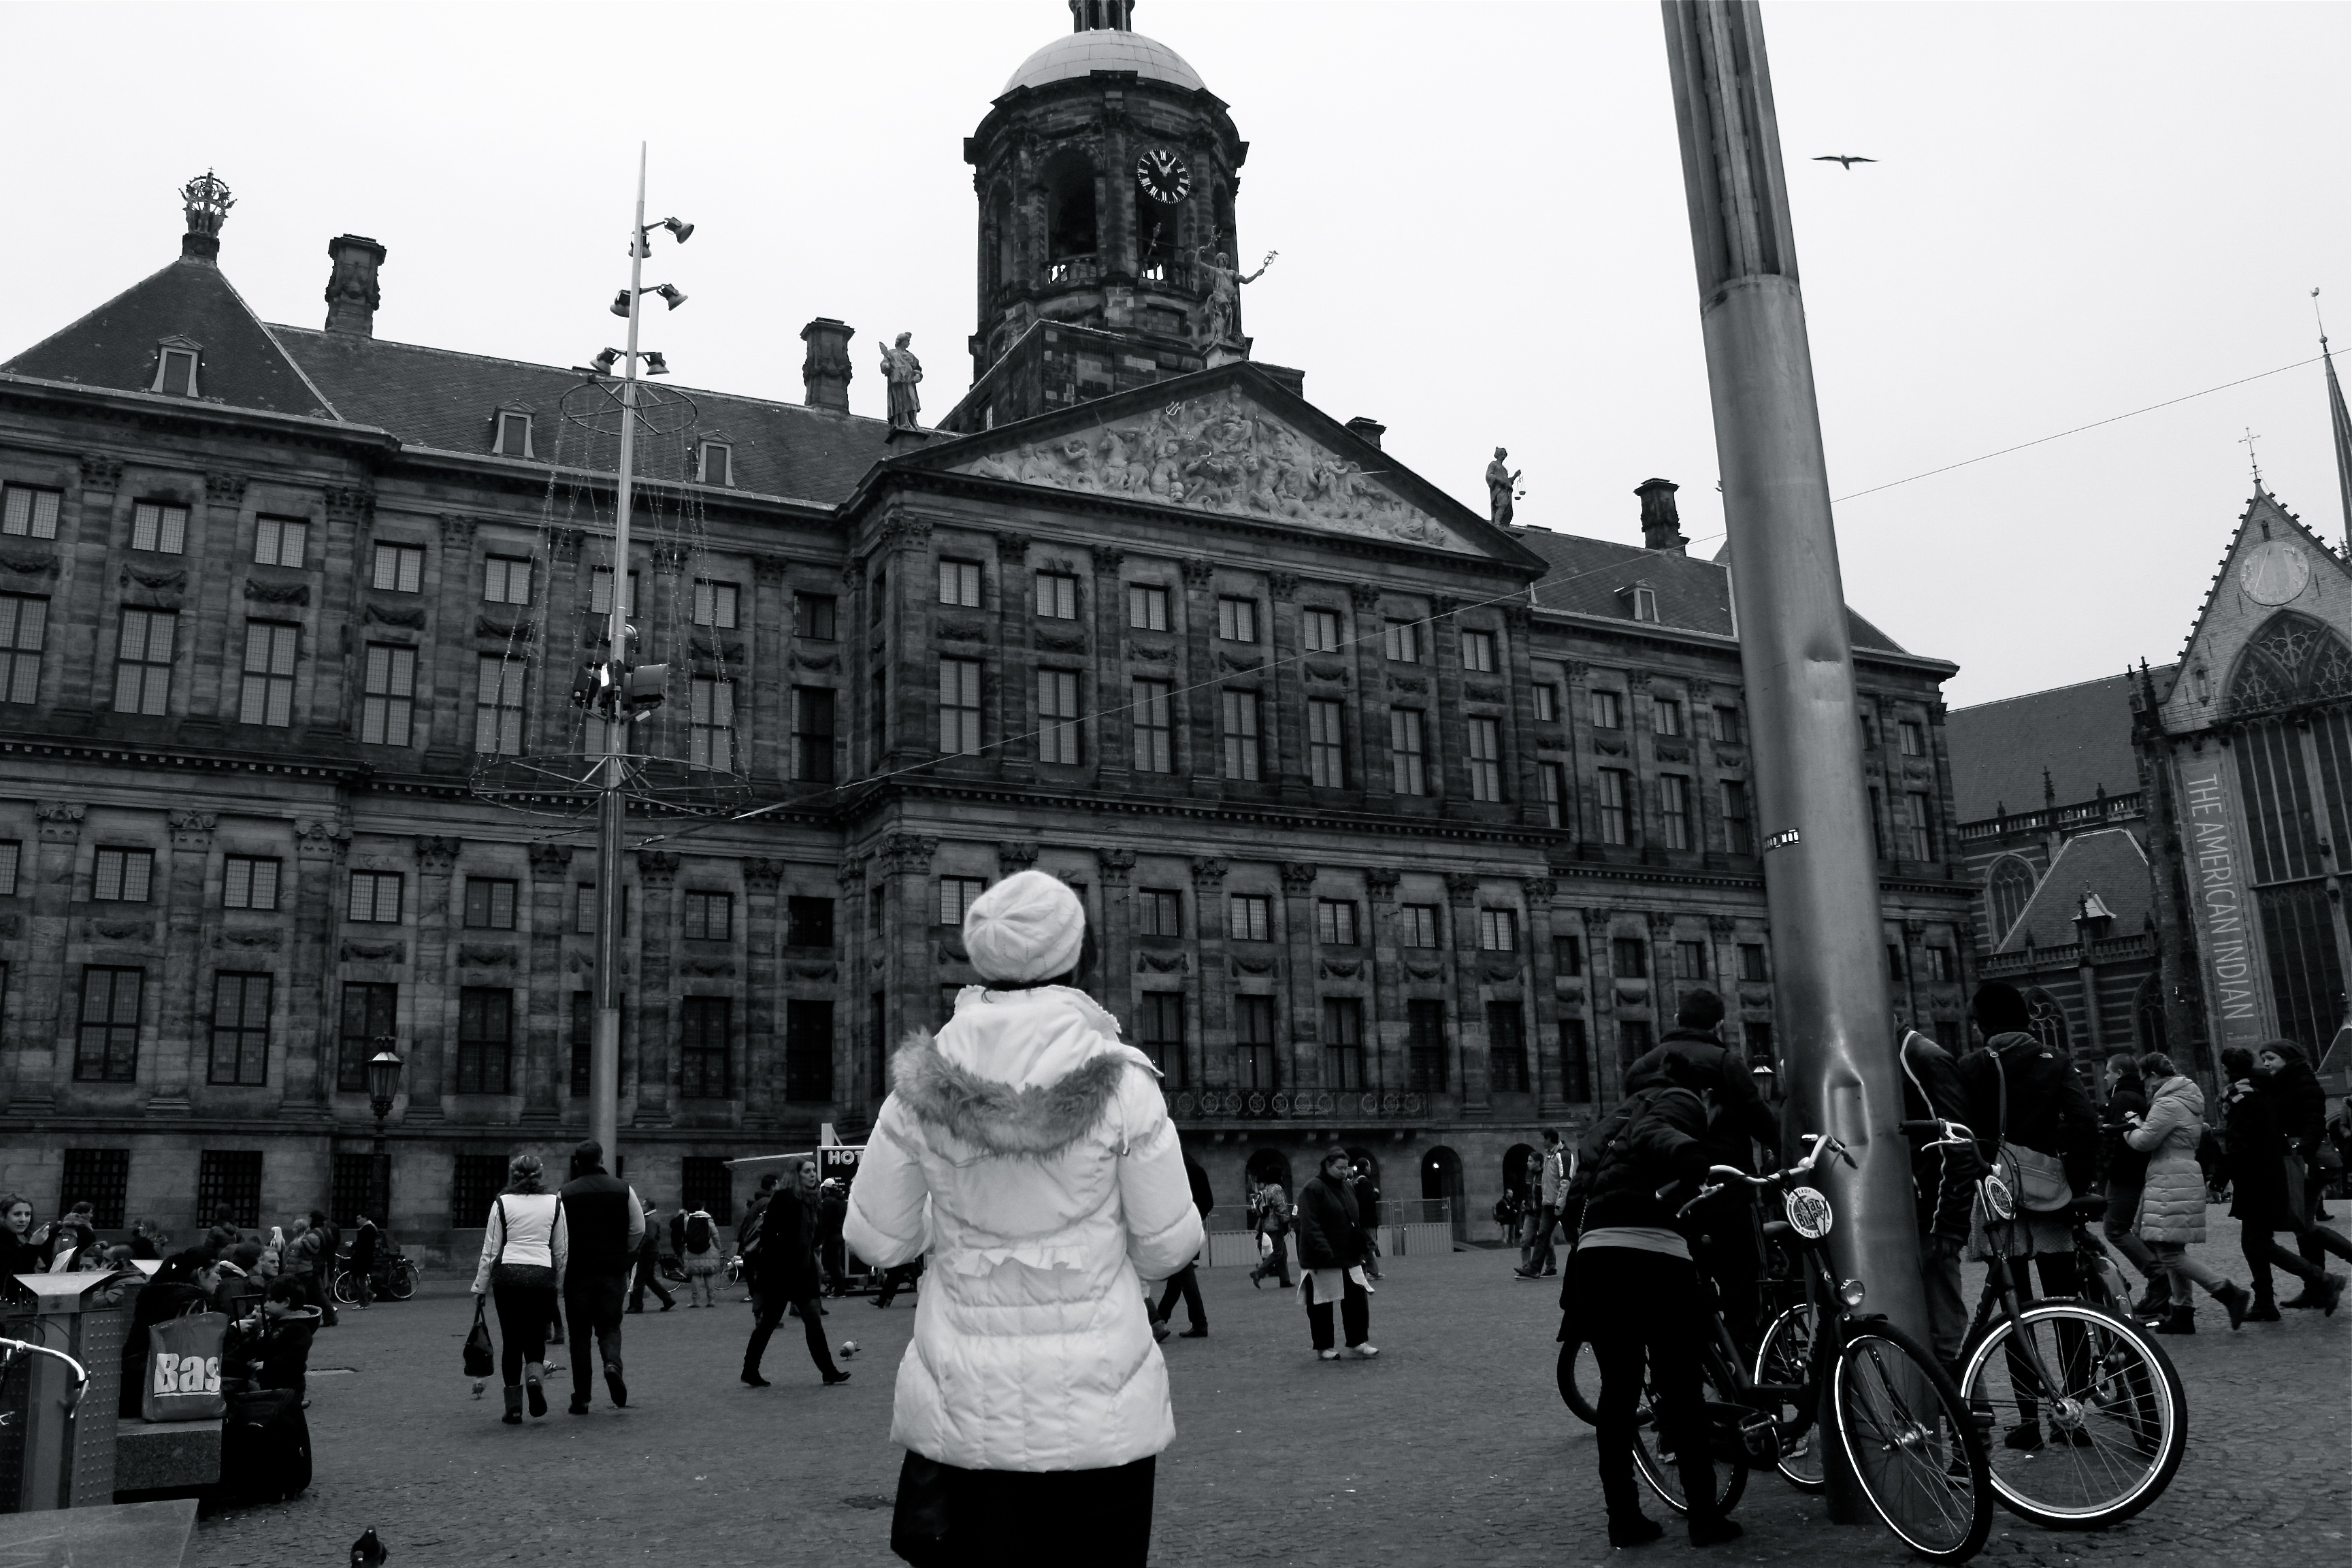 amsterdam netherlands royal palace dam square